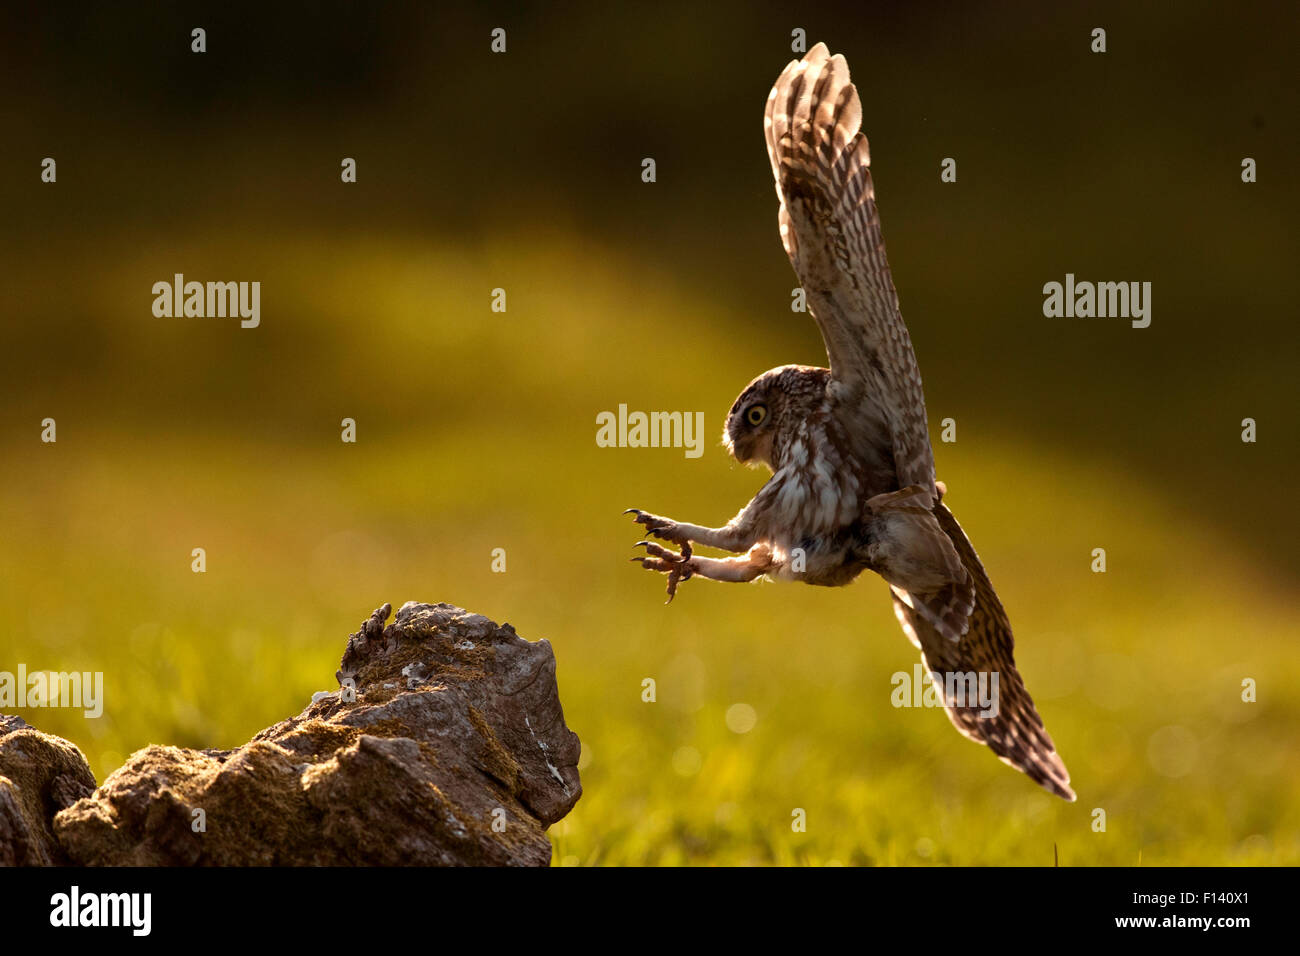 Little Owl (Athene noctua) landing on perch, UK, May. - Stock Image